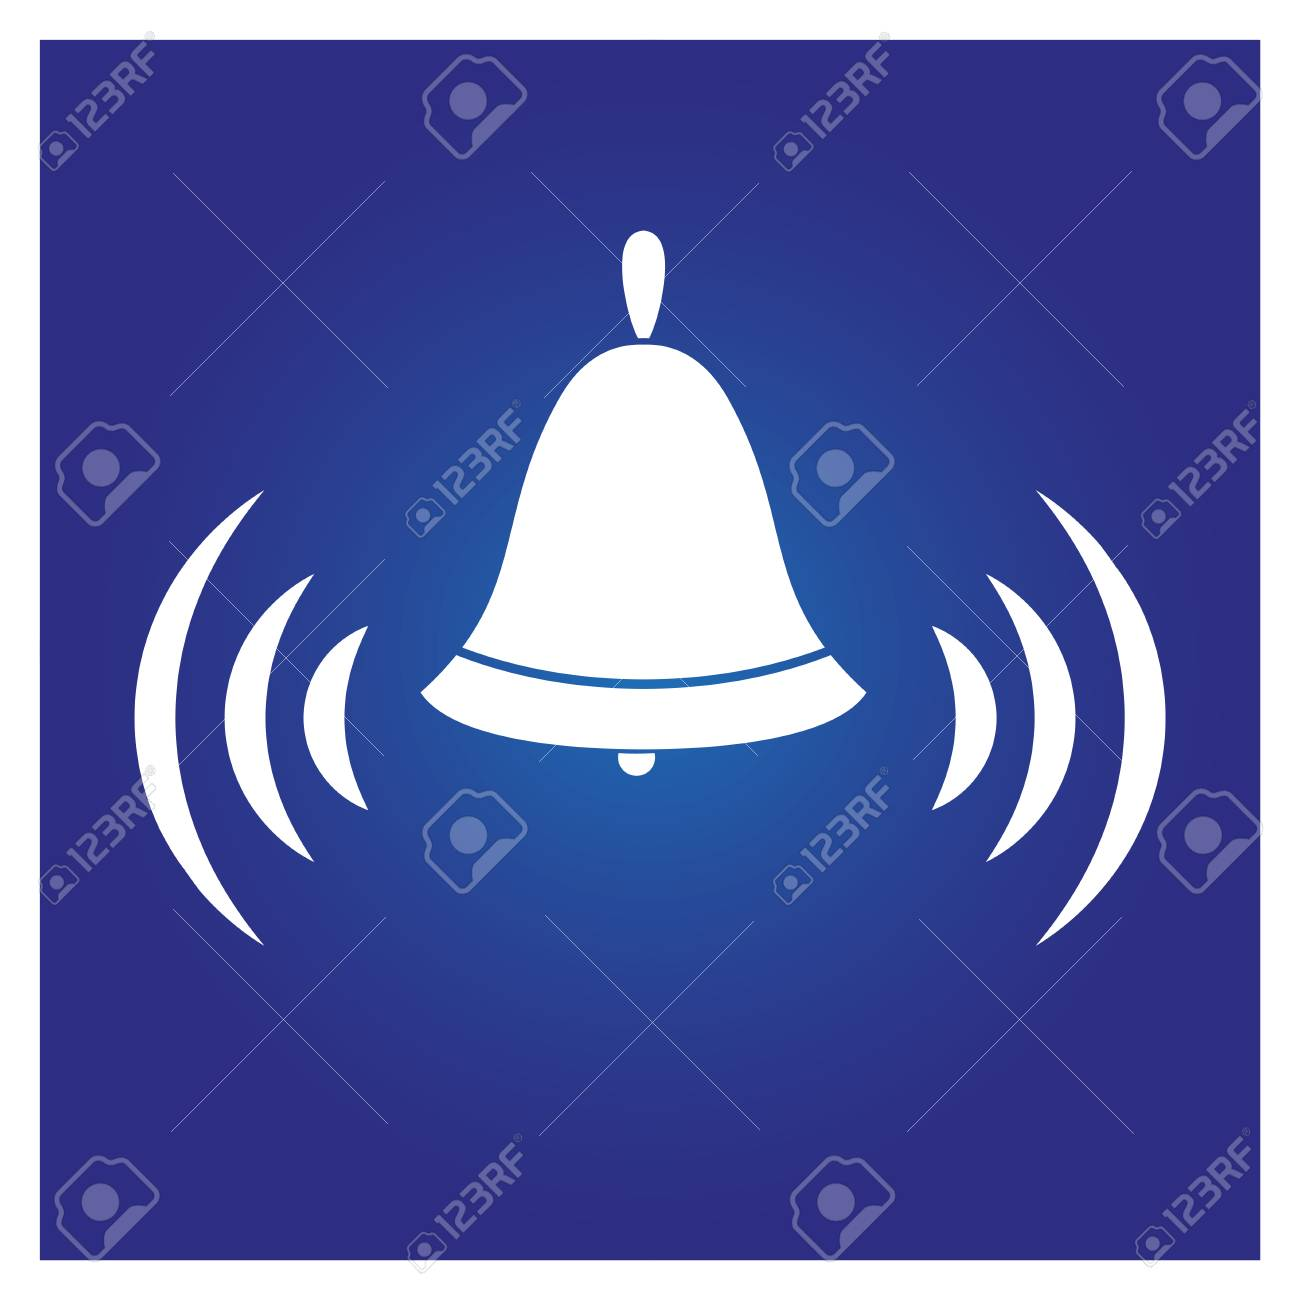 The Icon Of The Ringing Bell,on A Blue Background,for The Design.